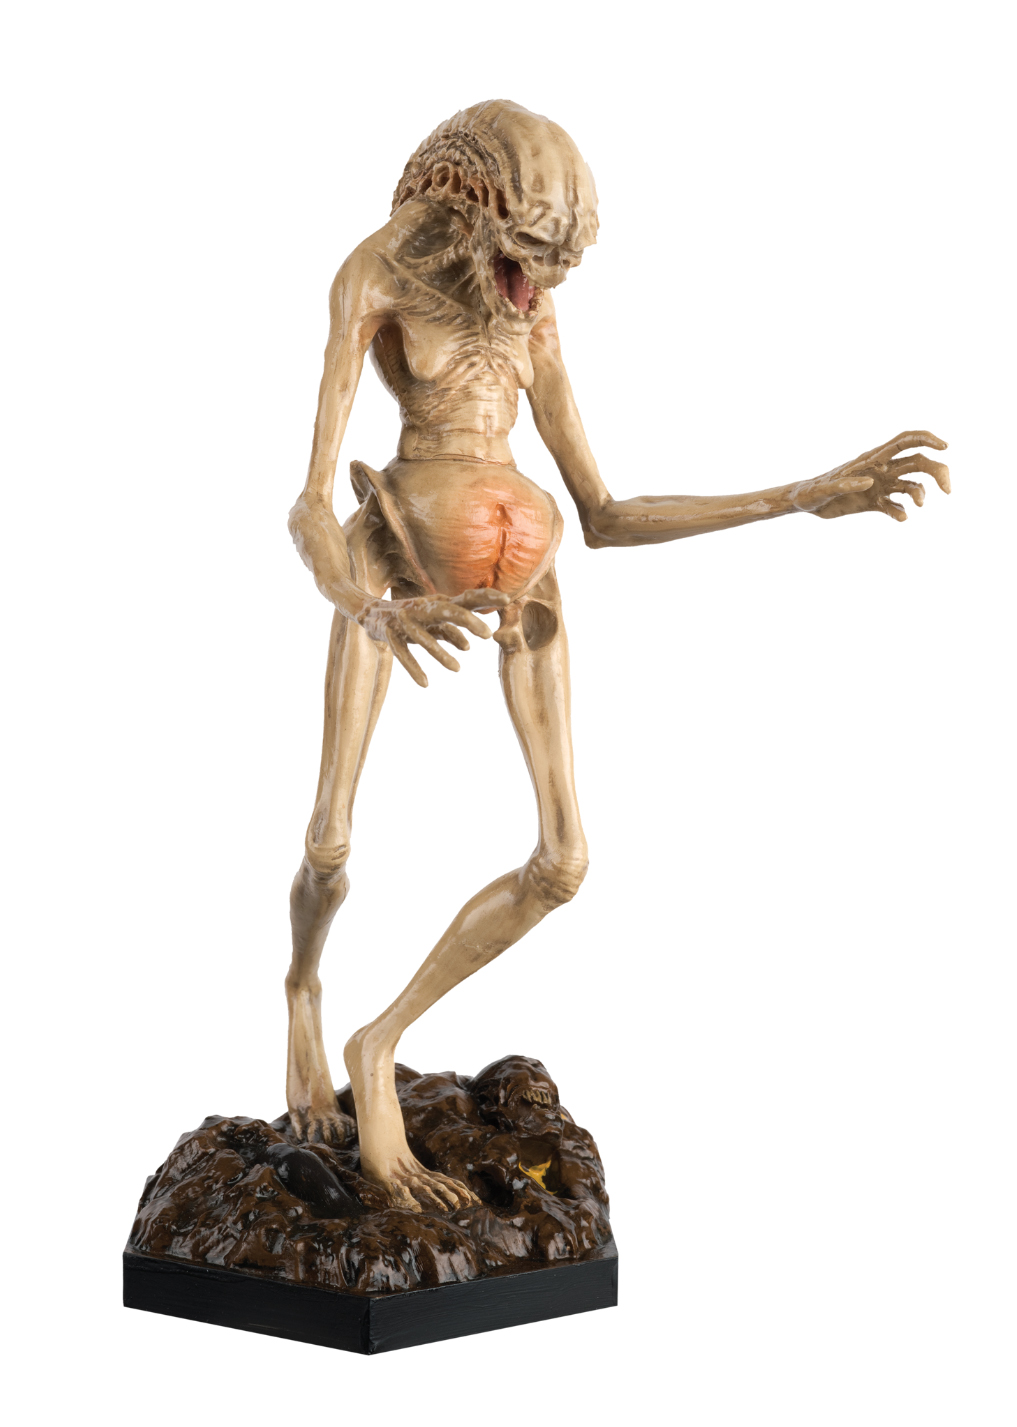 7. HC NYCC Alien_Predator_Collection Special Edition Newborn